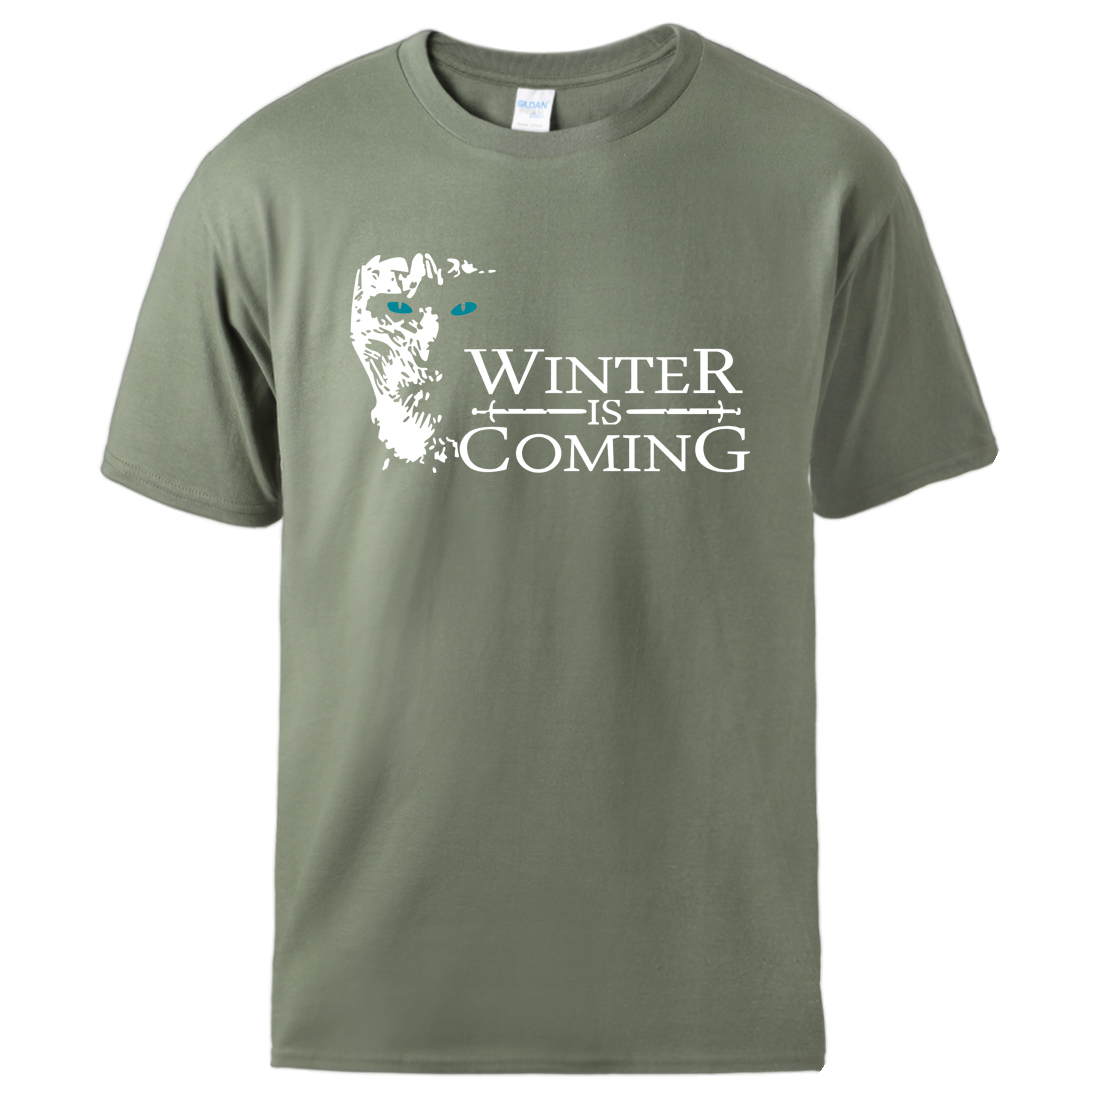 Tshirts Game Of Thrones House Of Stark Winter is Coming Mens Summer Tee 2020 Casual Sportswear Cool Short Sleeve Tracksuits Tee